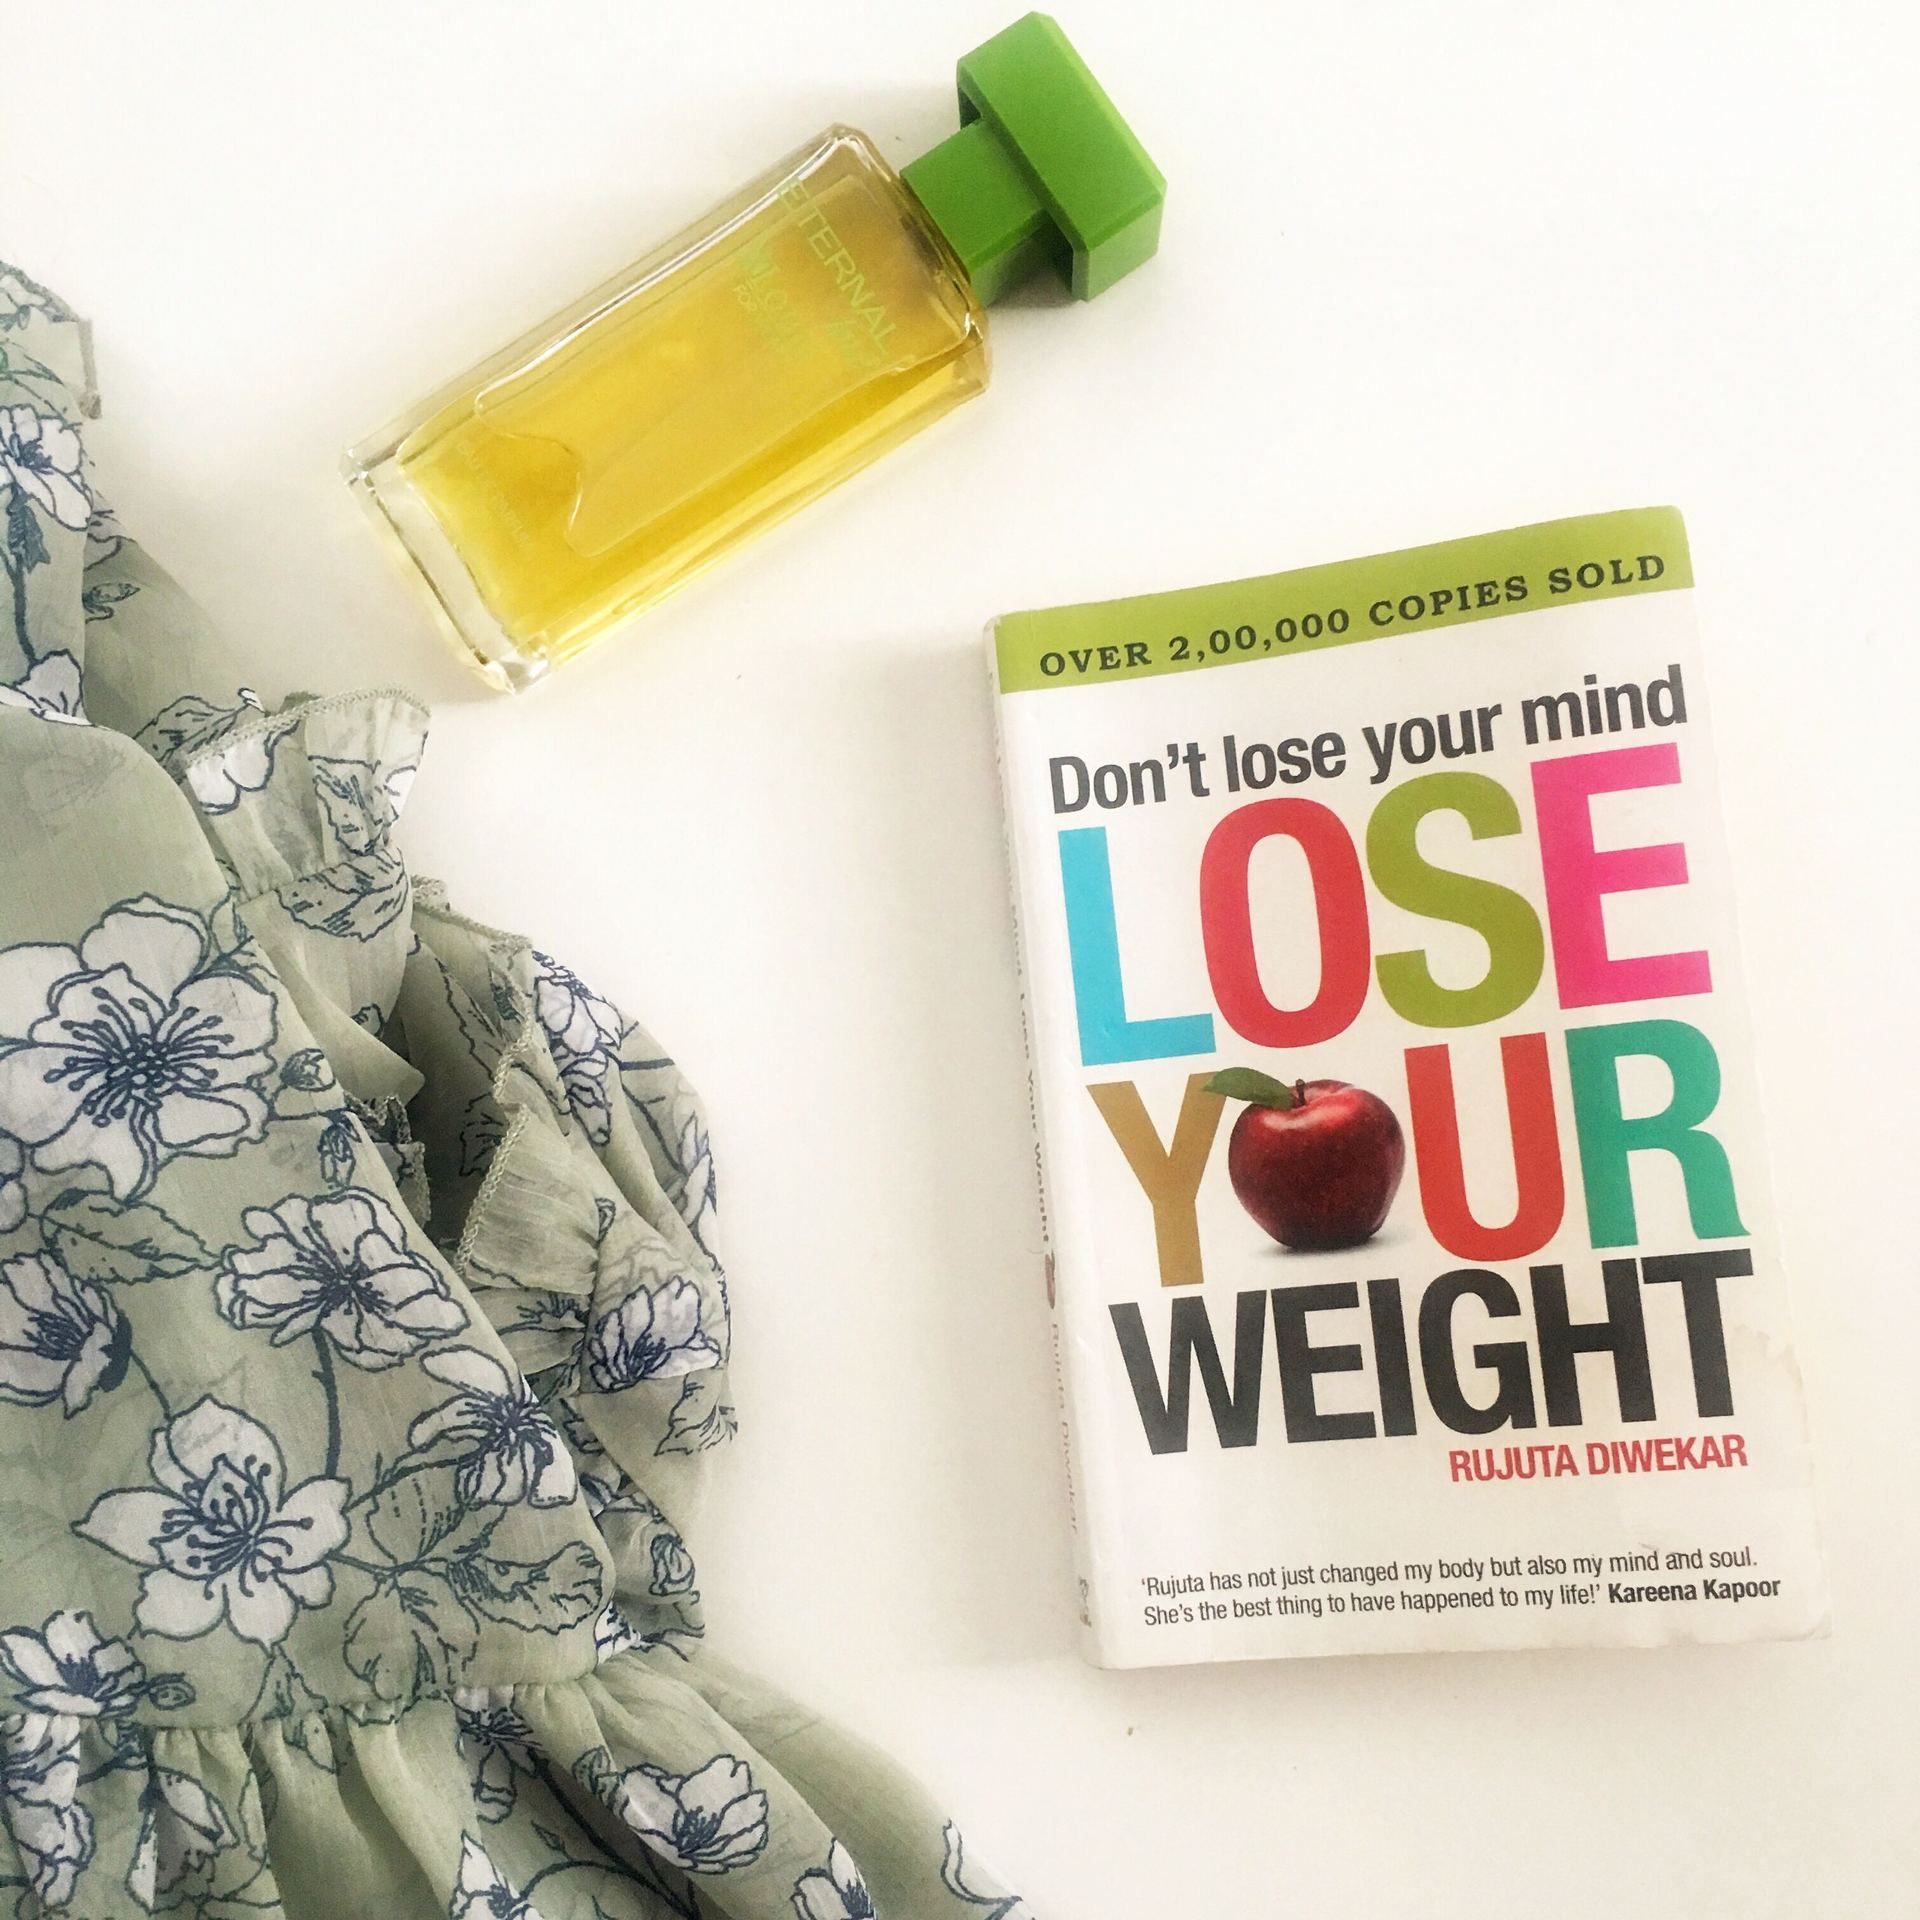 Dont lose your mind. Lose your weight - The Book image